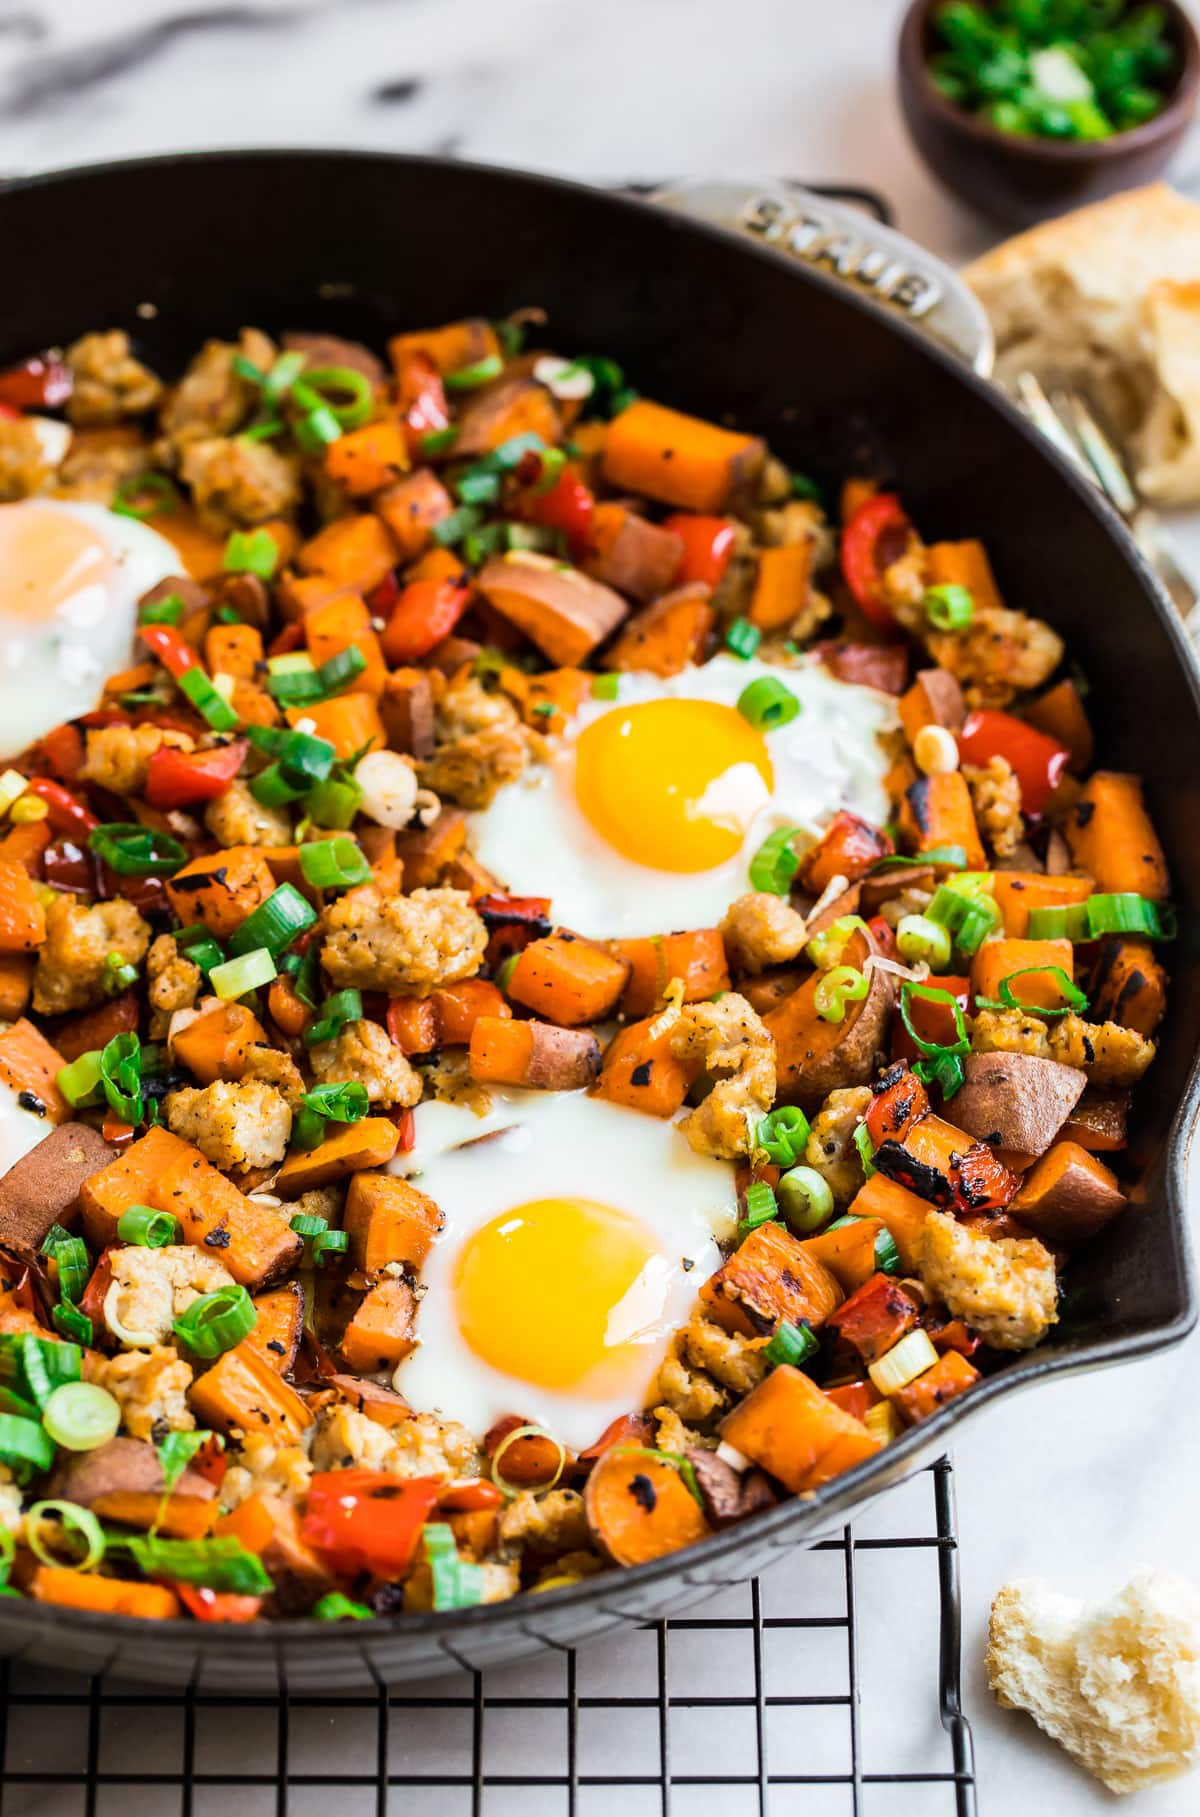 eggs baked on top of sweet potato hash with sausage and red bell peppers